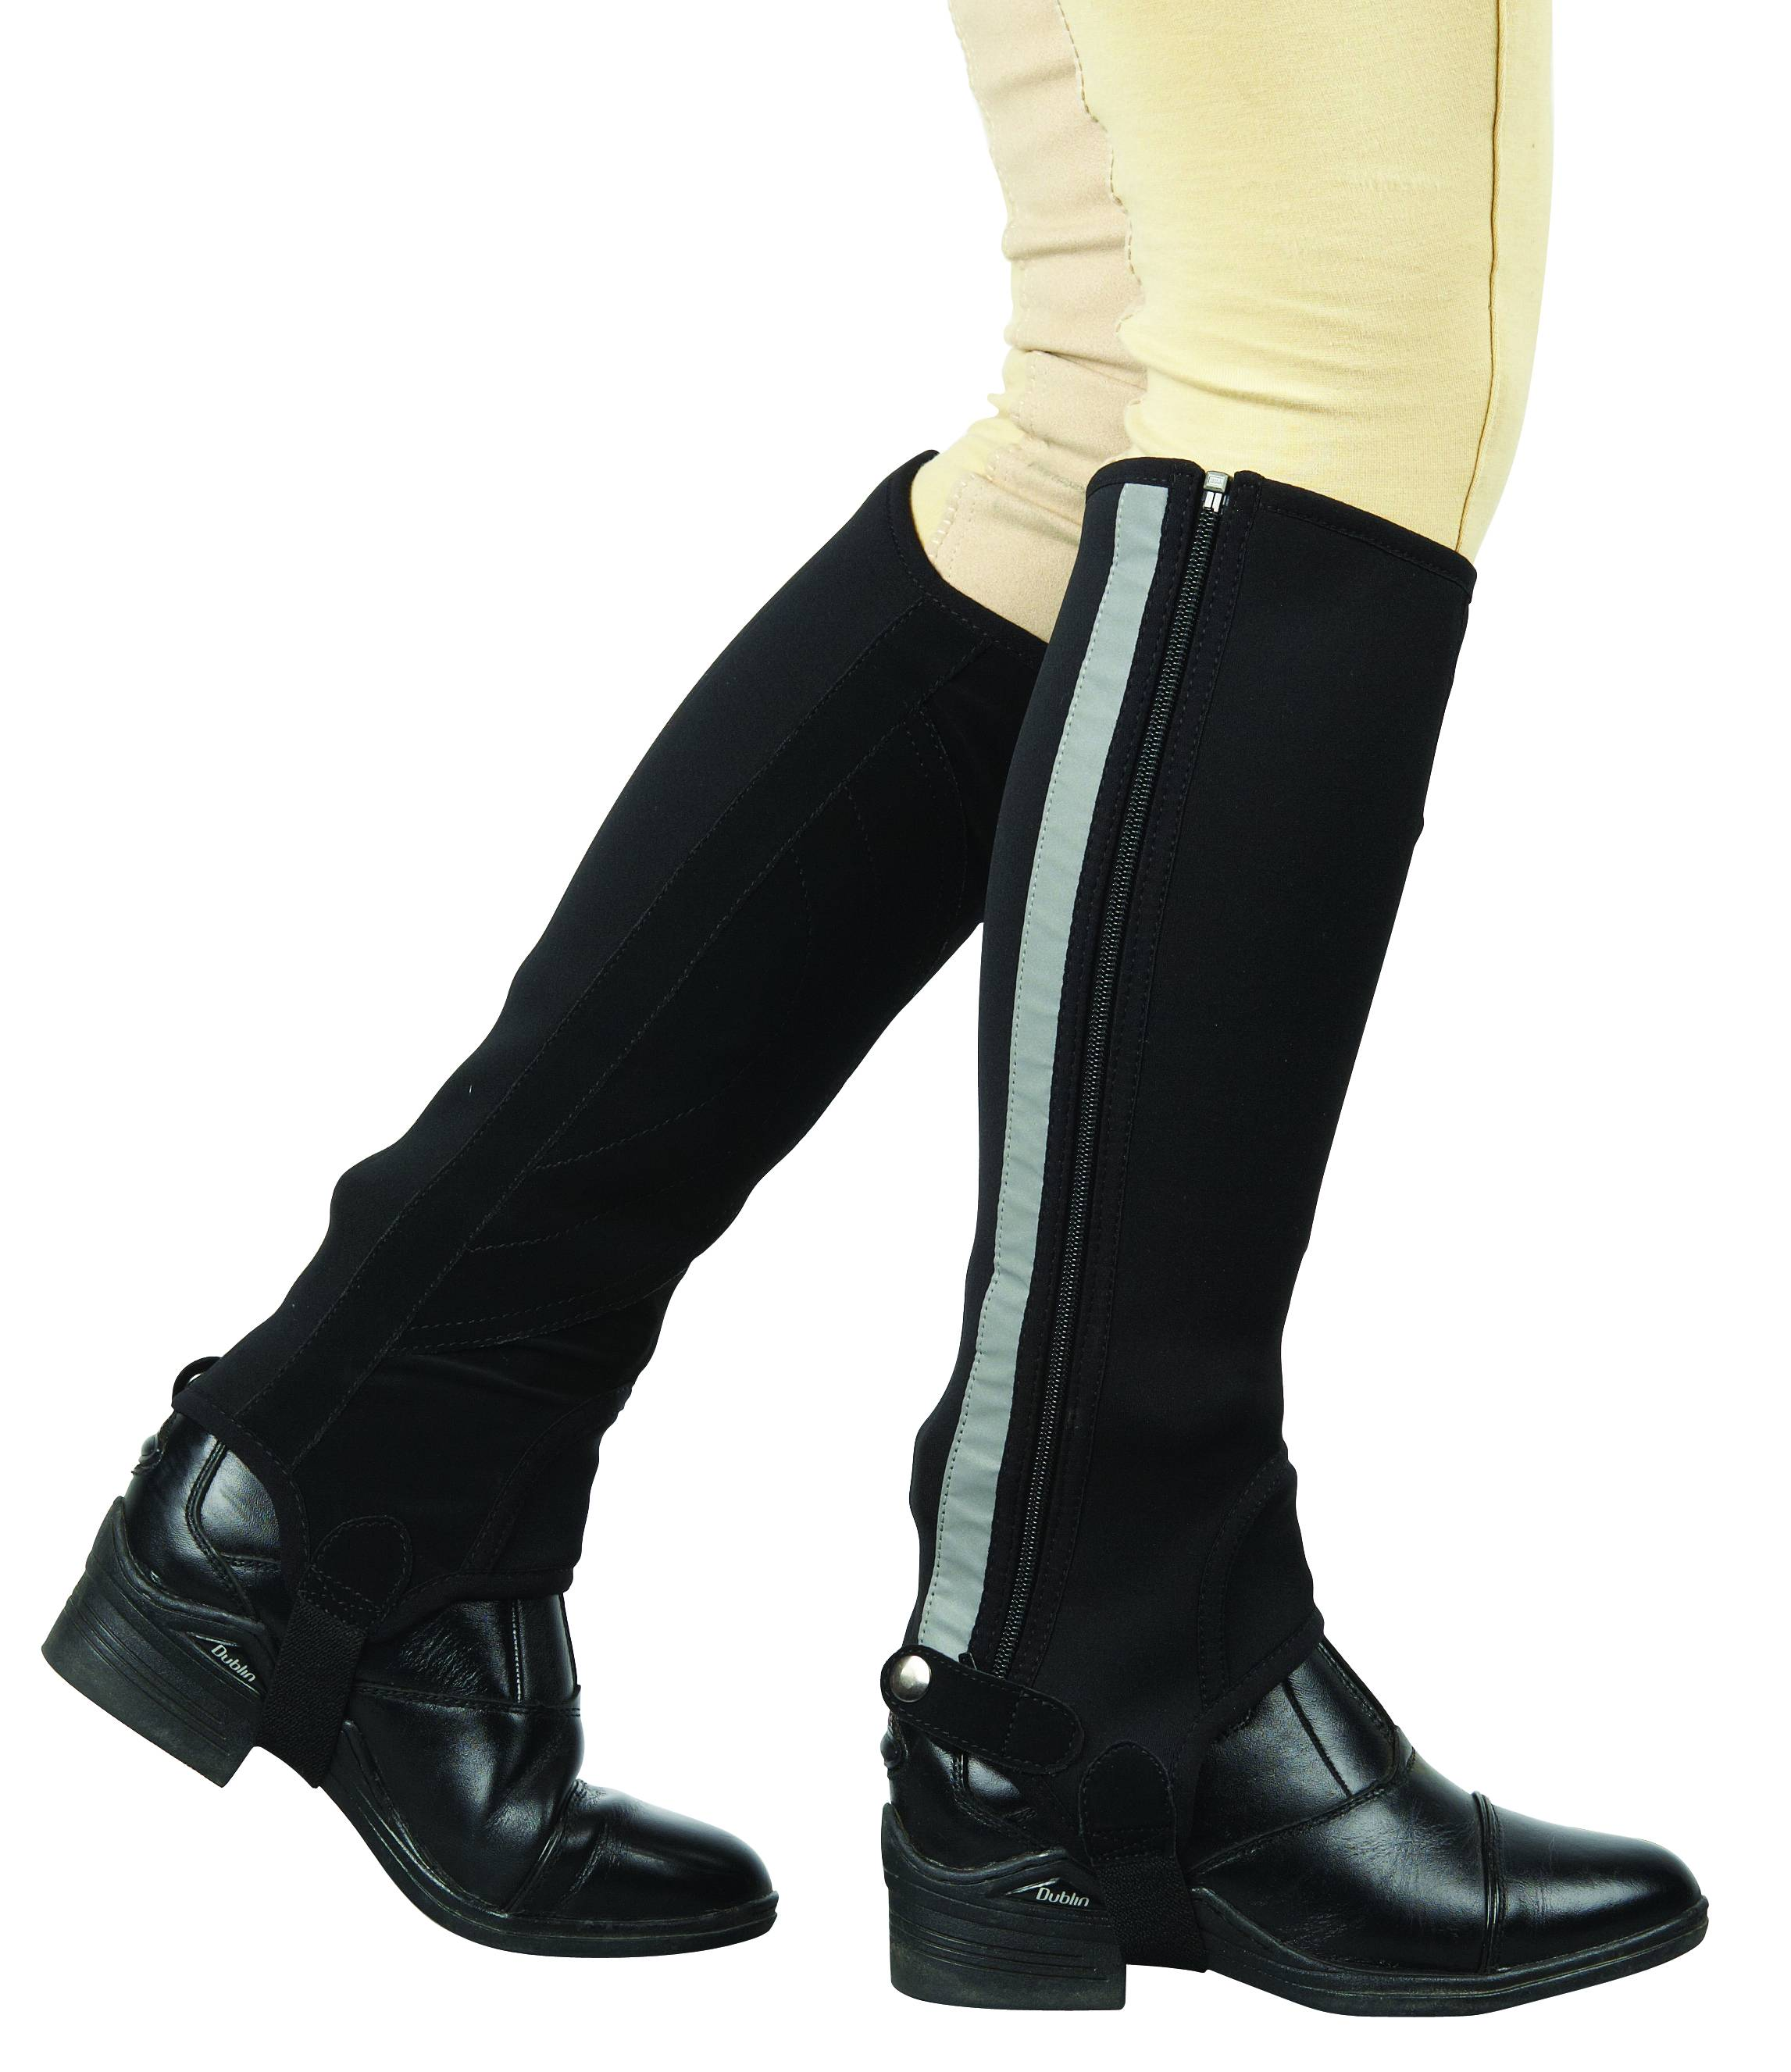 Dublin Neoprene Half Chaps - Ladies